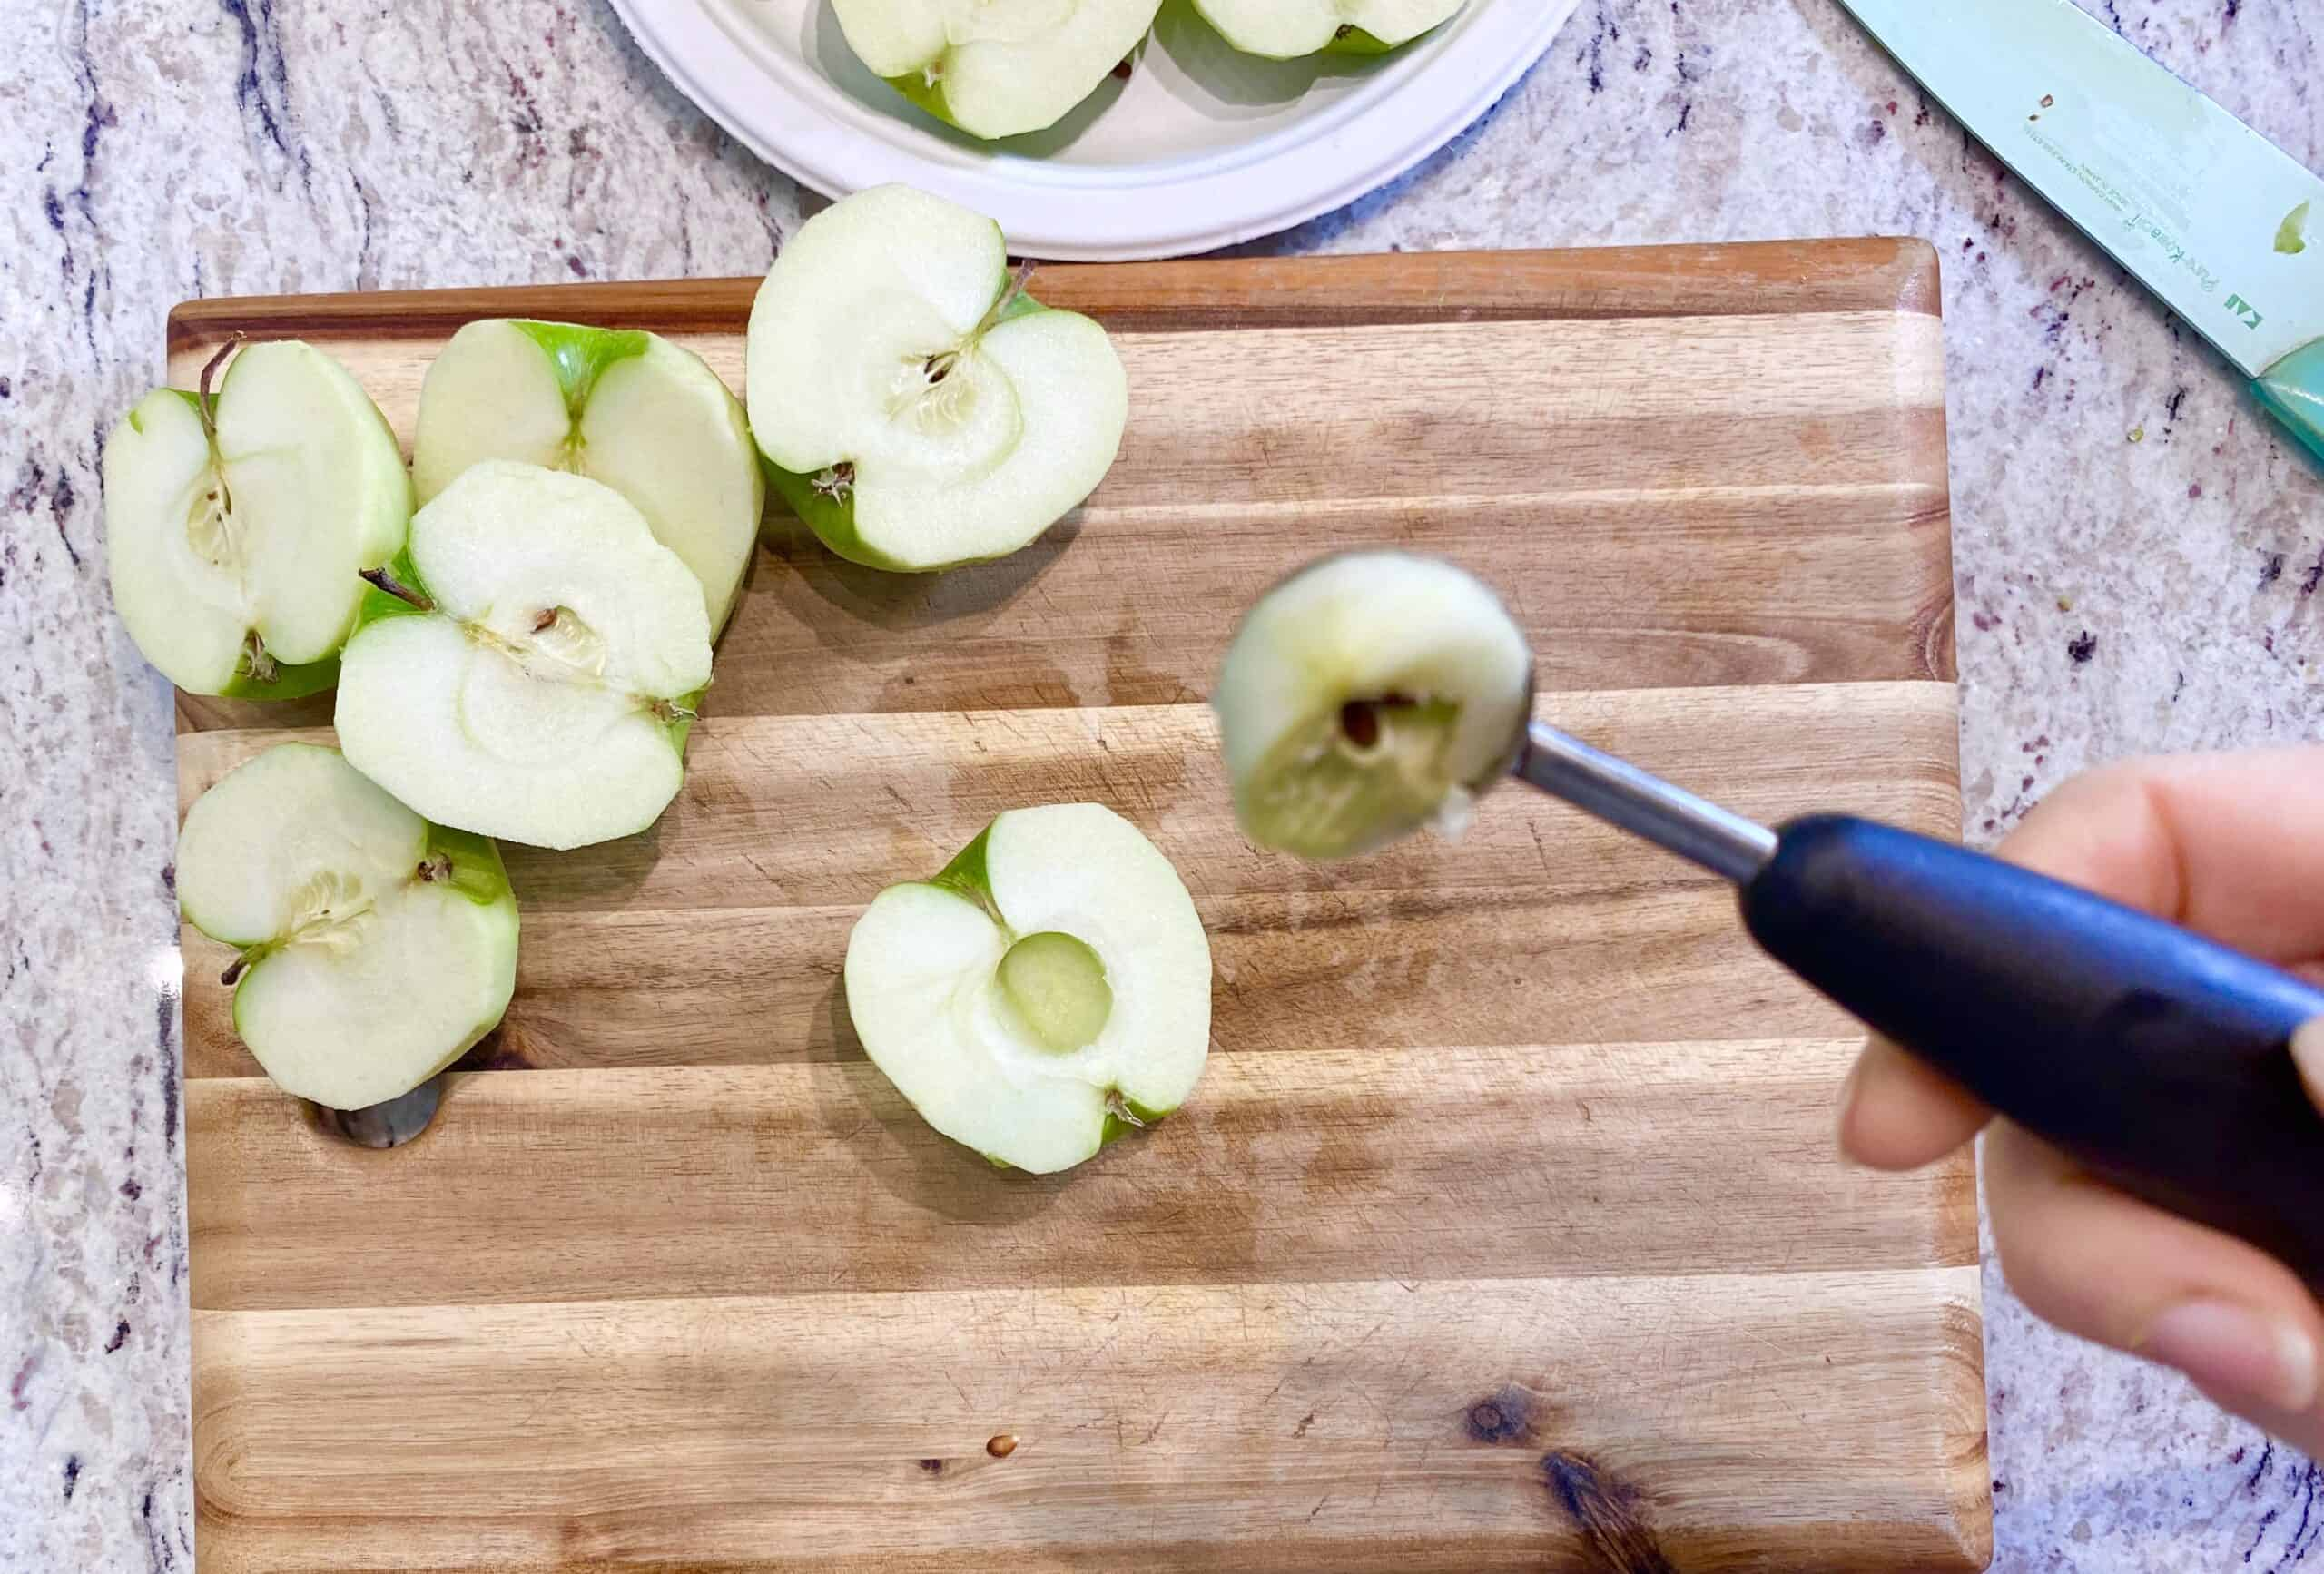 Removing seeds from apple halves on wooden cutting board